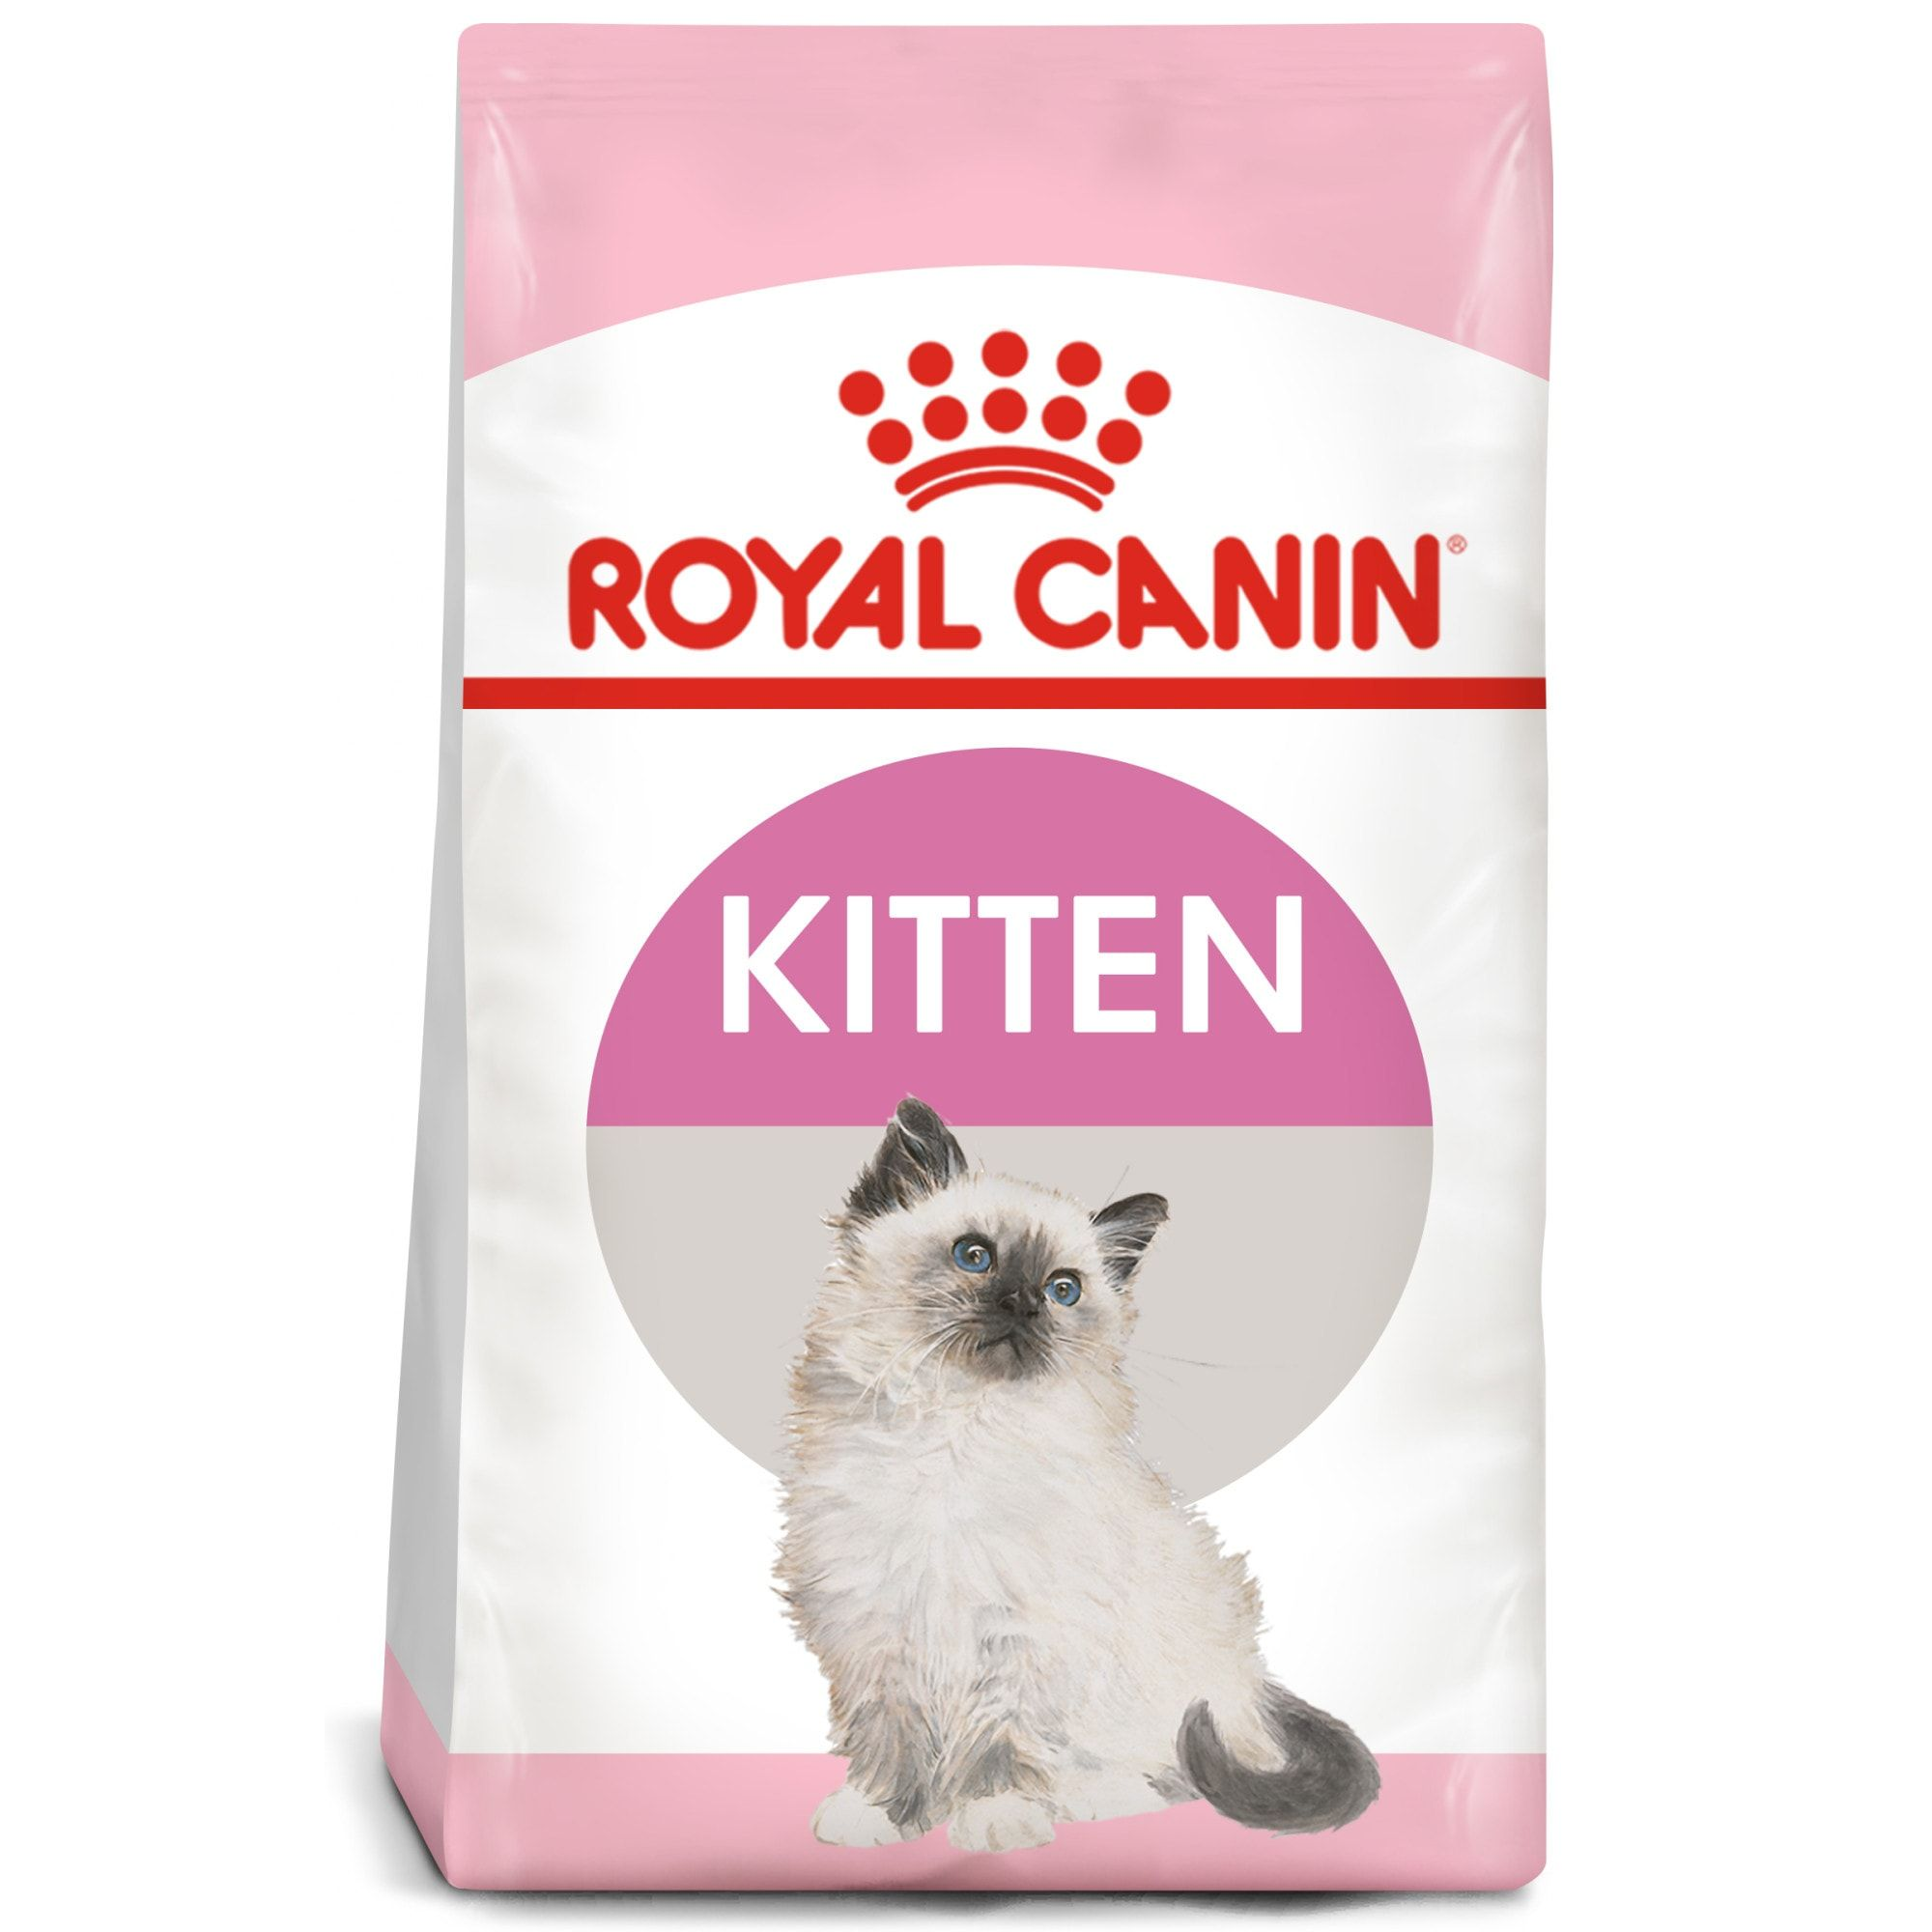 Royal Canin Feline Health Nutrition Dry Food For Young Kittens 15 Lbs Petco In 2020 Feline Health Healthy Nutrition Diet Health And Nutrition